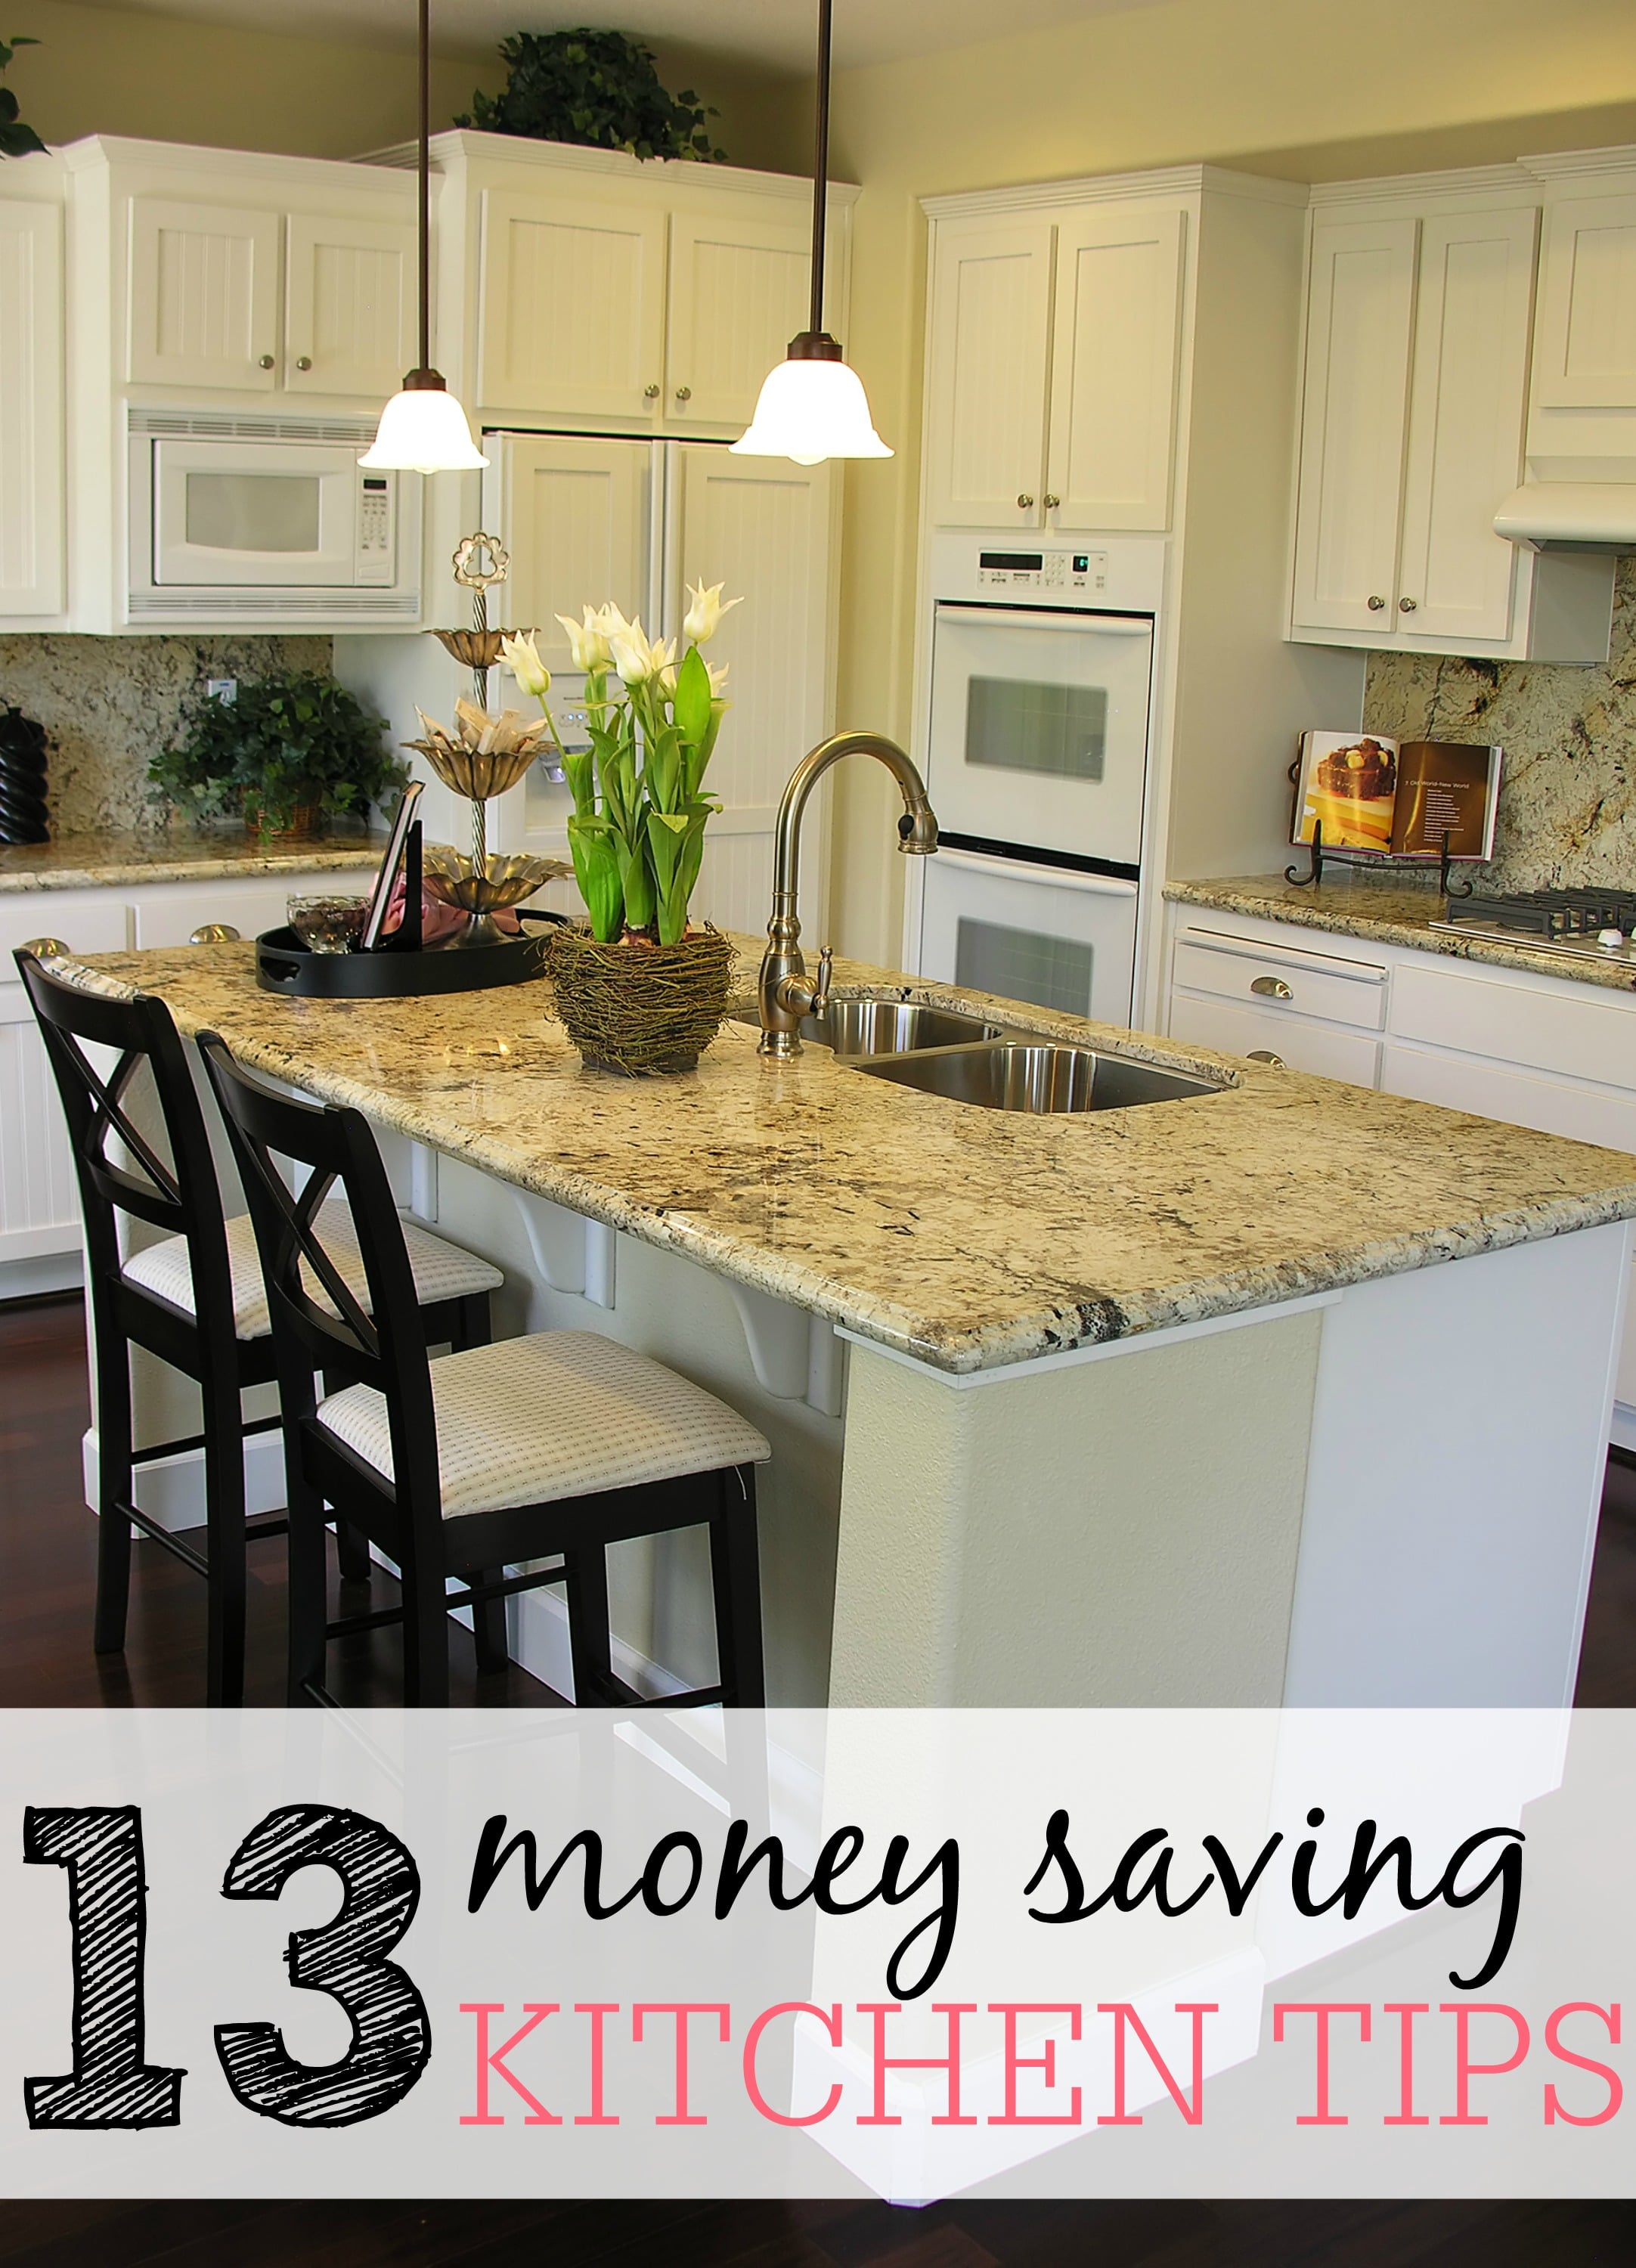 13 Money Saving Kitchen Tips